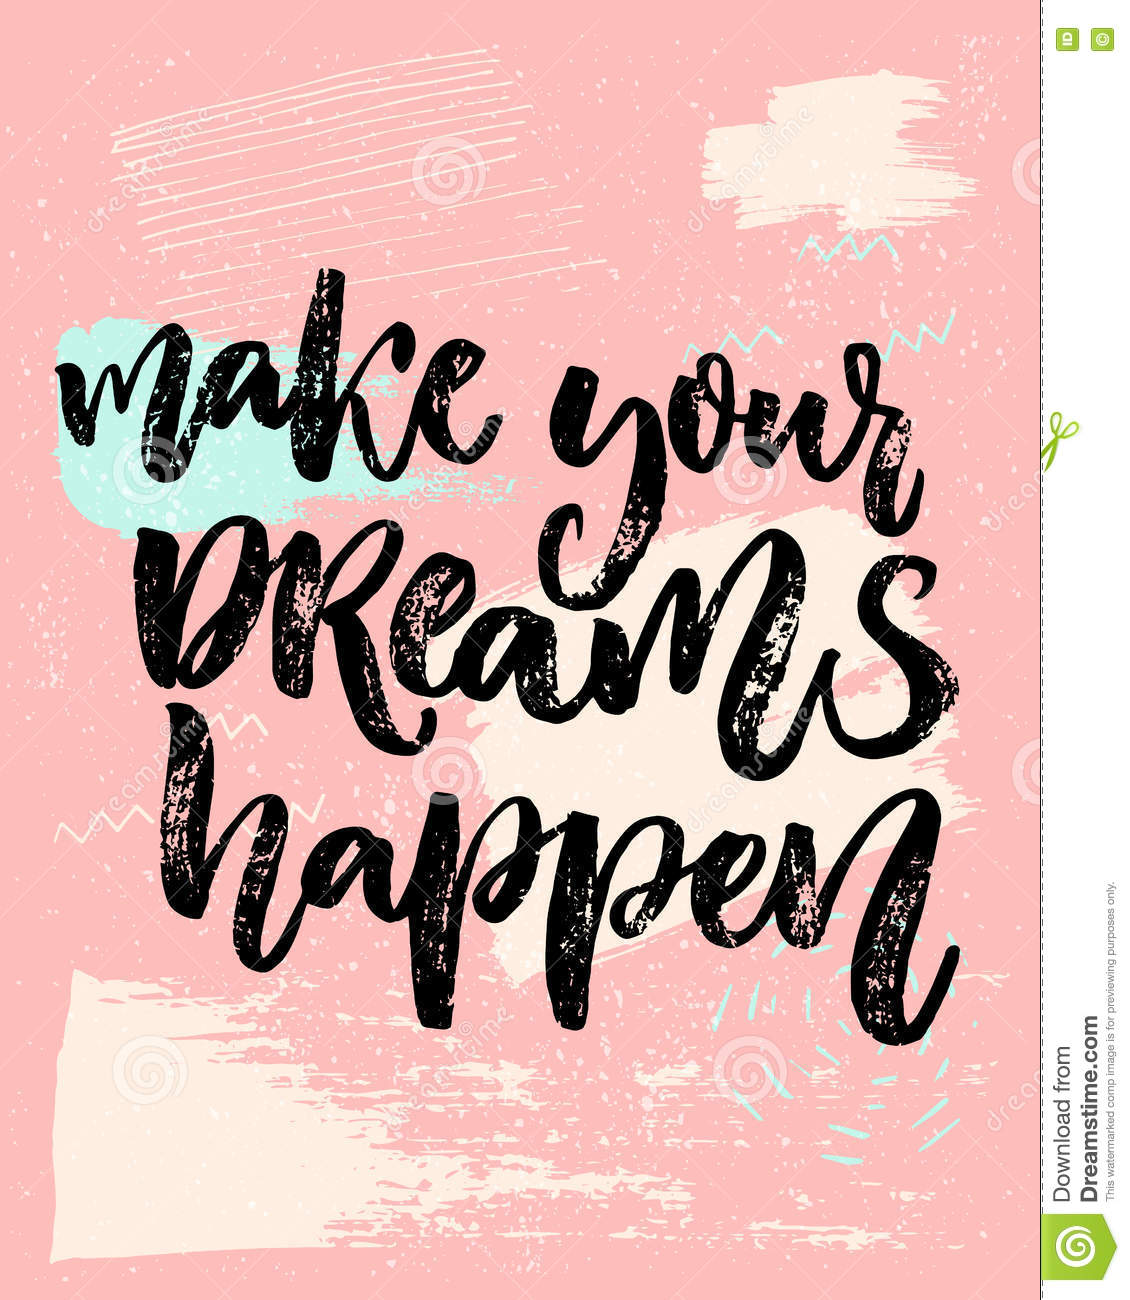 Make your dreams happen inspirational saying about dream